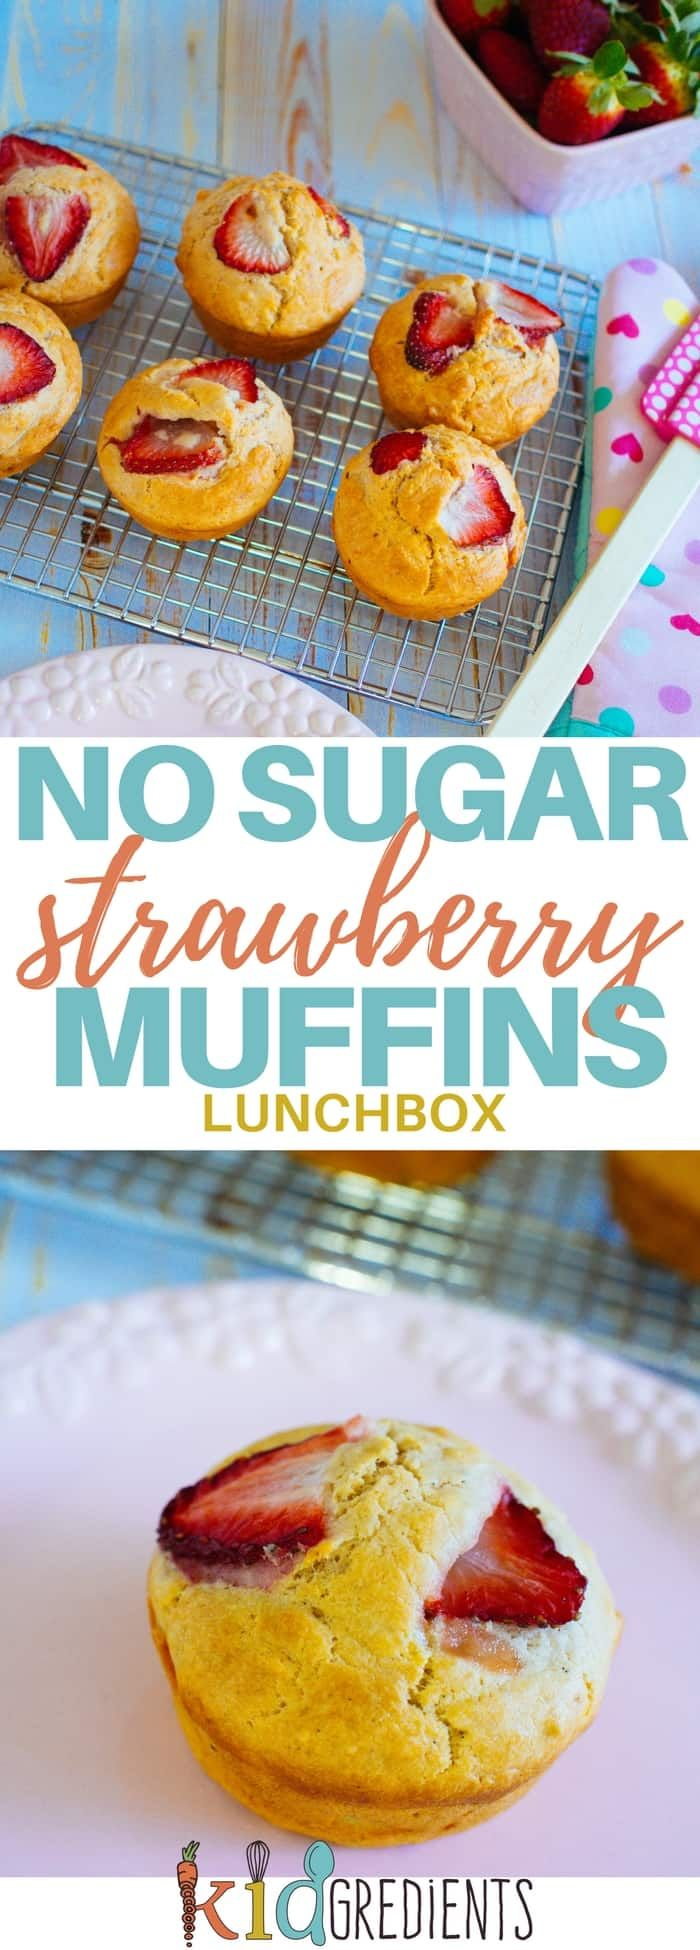 No sugar strawberry muffins. Perfect in the lunchbox and great for afternoon tea! Freezer friendly and easy to bake this recipe is a kid pleaser! #kidsfood #muffins #nosugar #baked #familyfoods #lunchbox via @kidgredients